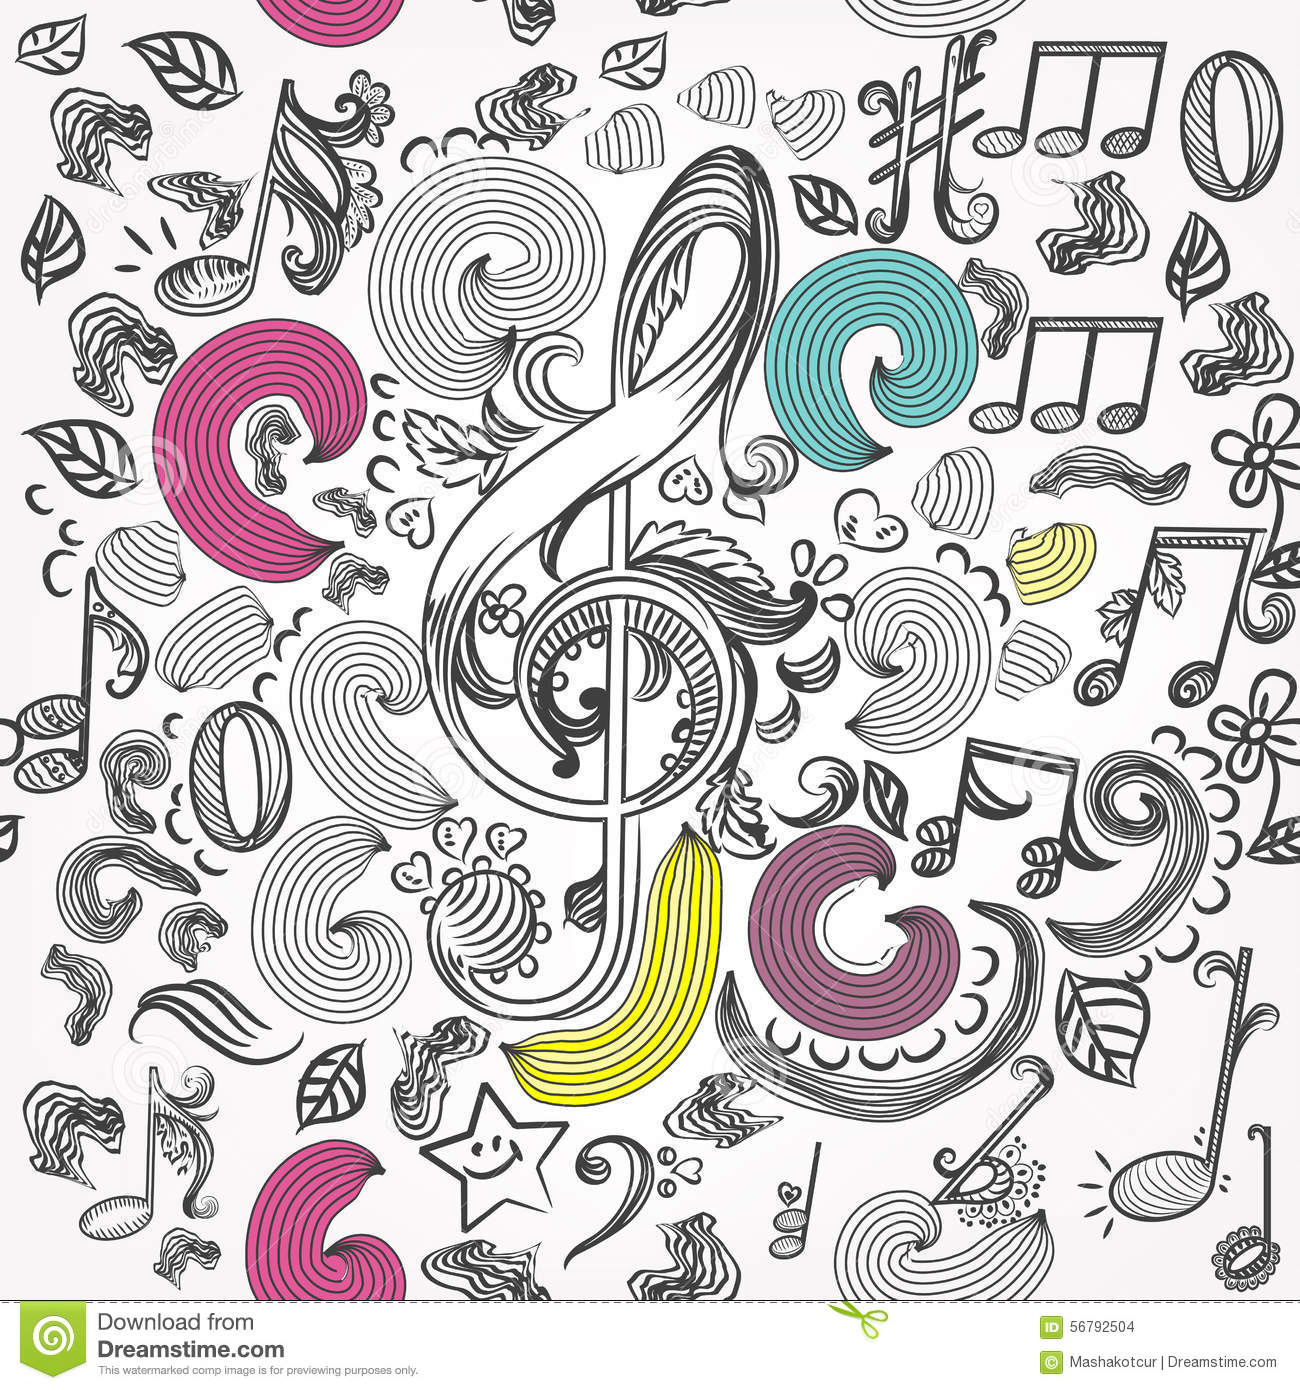 vector-seamless-wallpaper-pattern-doodle-music-elements-sketched-notes-treble-clef-56792504.jpg